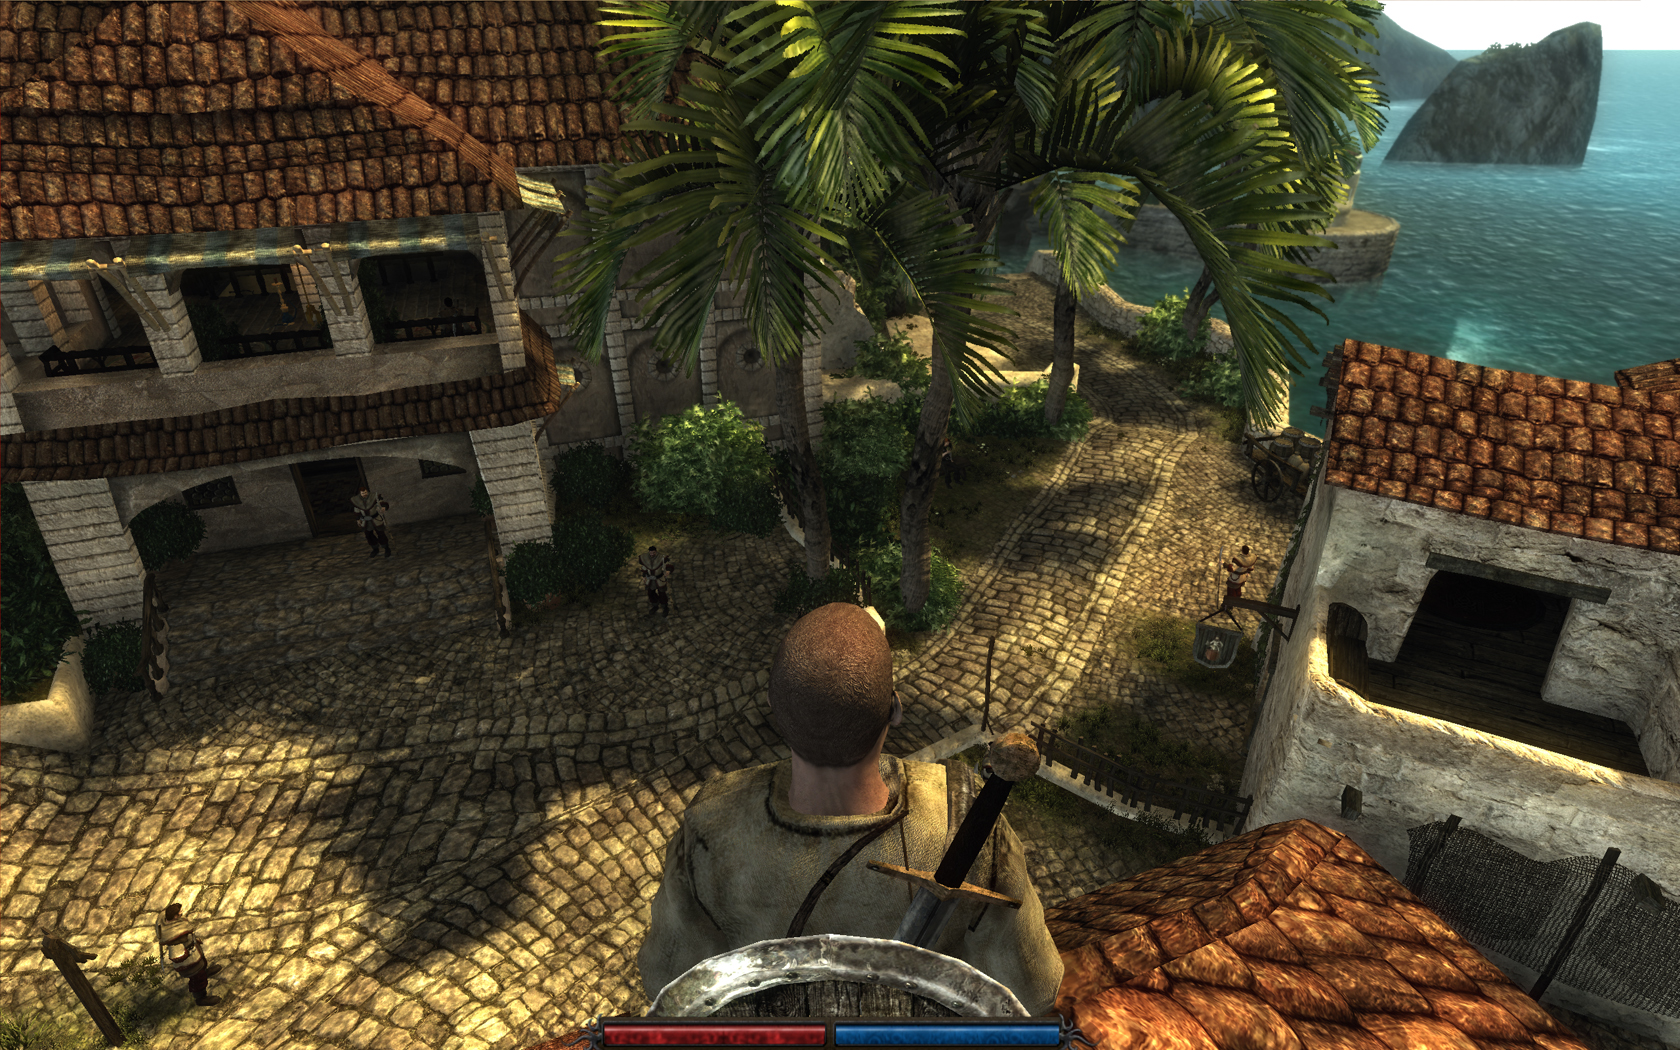 risen official thread pcpcpc360 rpg from gothic